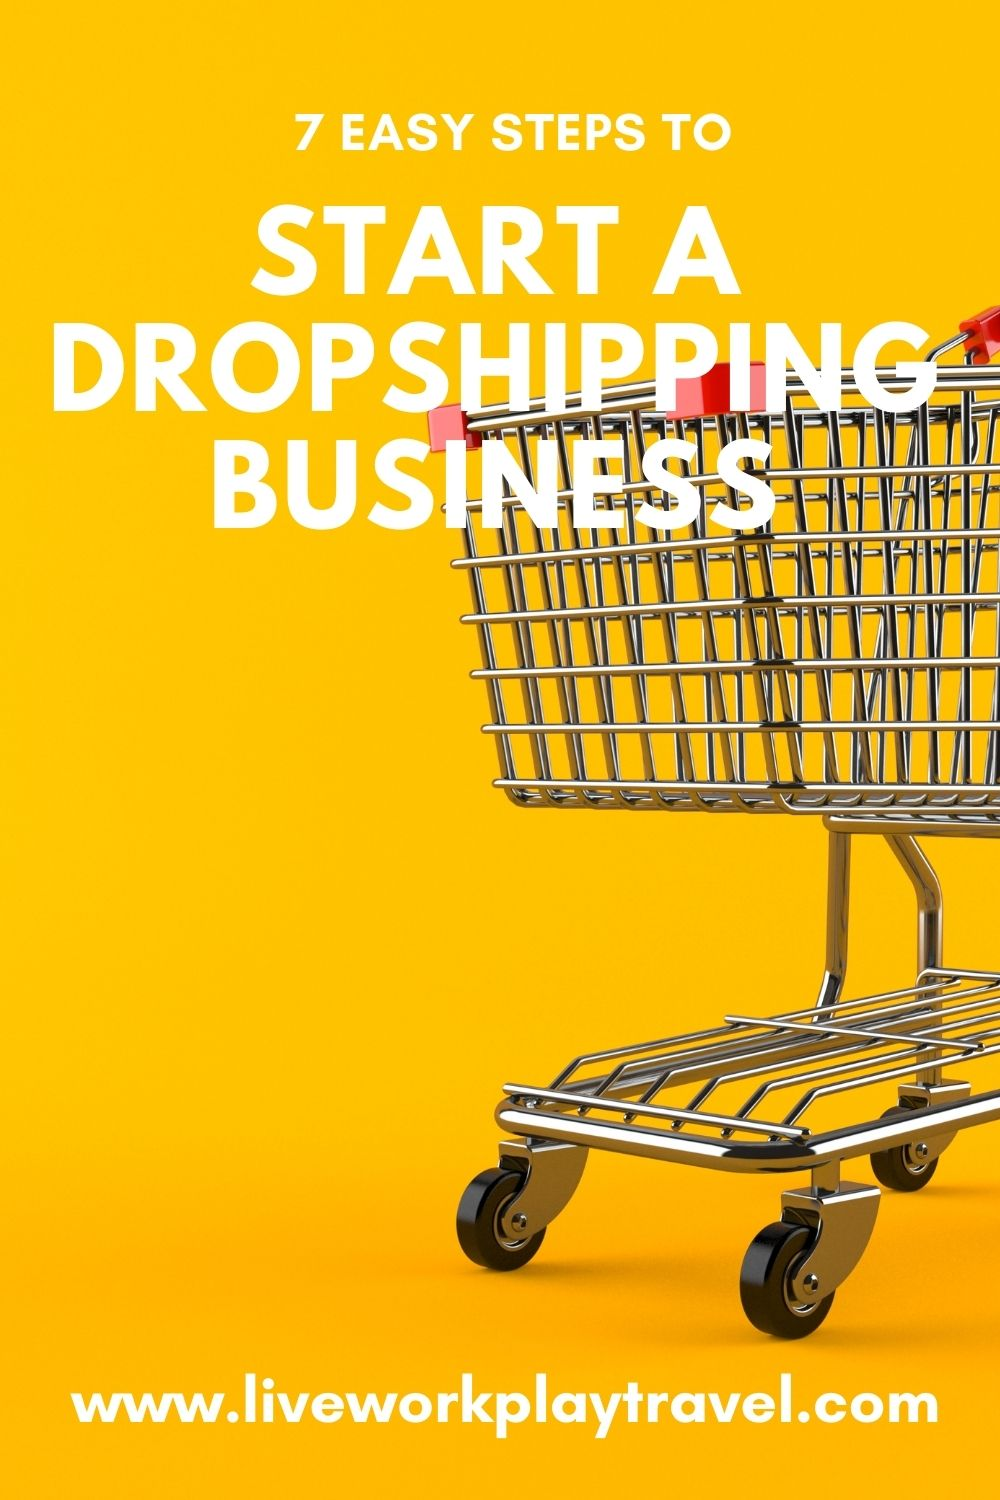 You Can Start A Dropshipping Business In 7 Easy Steps. Having A Shopping Cart System Set Up Will Ensure You Capture Sales.